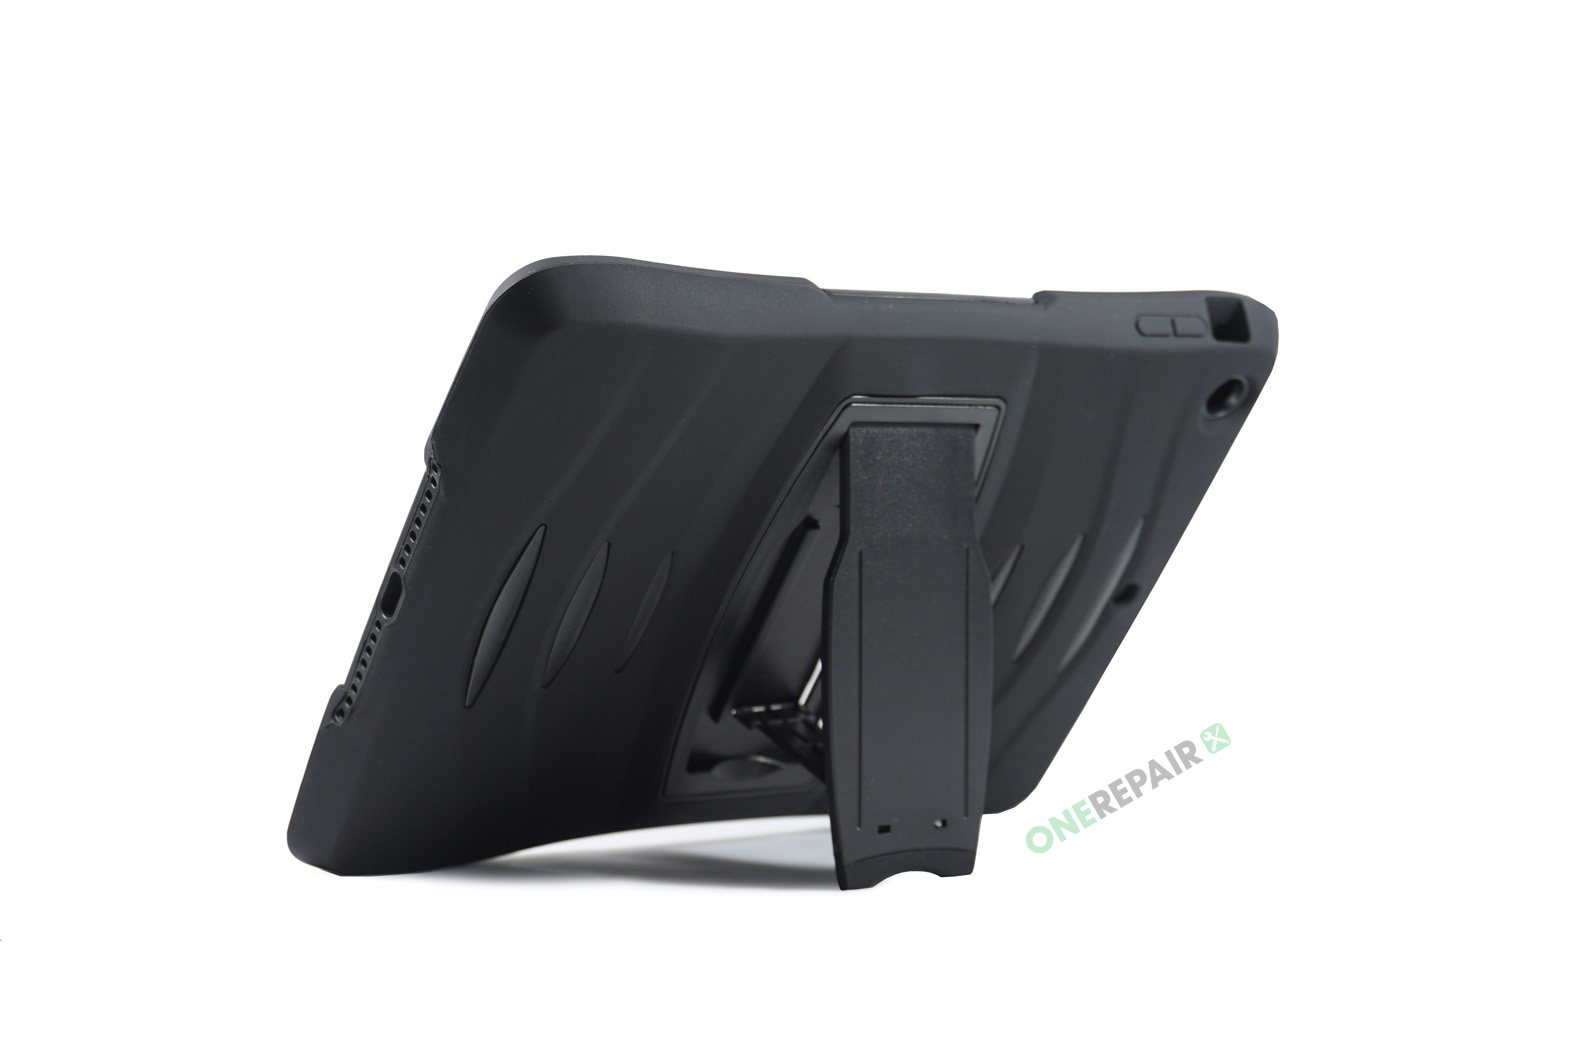 351580_iPad_Air_A1474_A1475_A1476_3-in-1_Speciel_Boernecover_Børne_Hardcase_Cover_Sort_OneRepair_00004